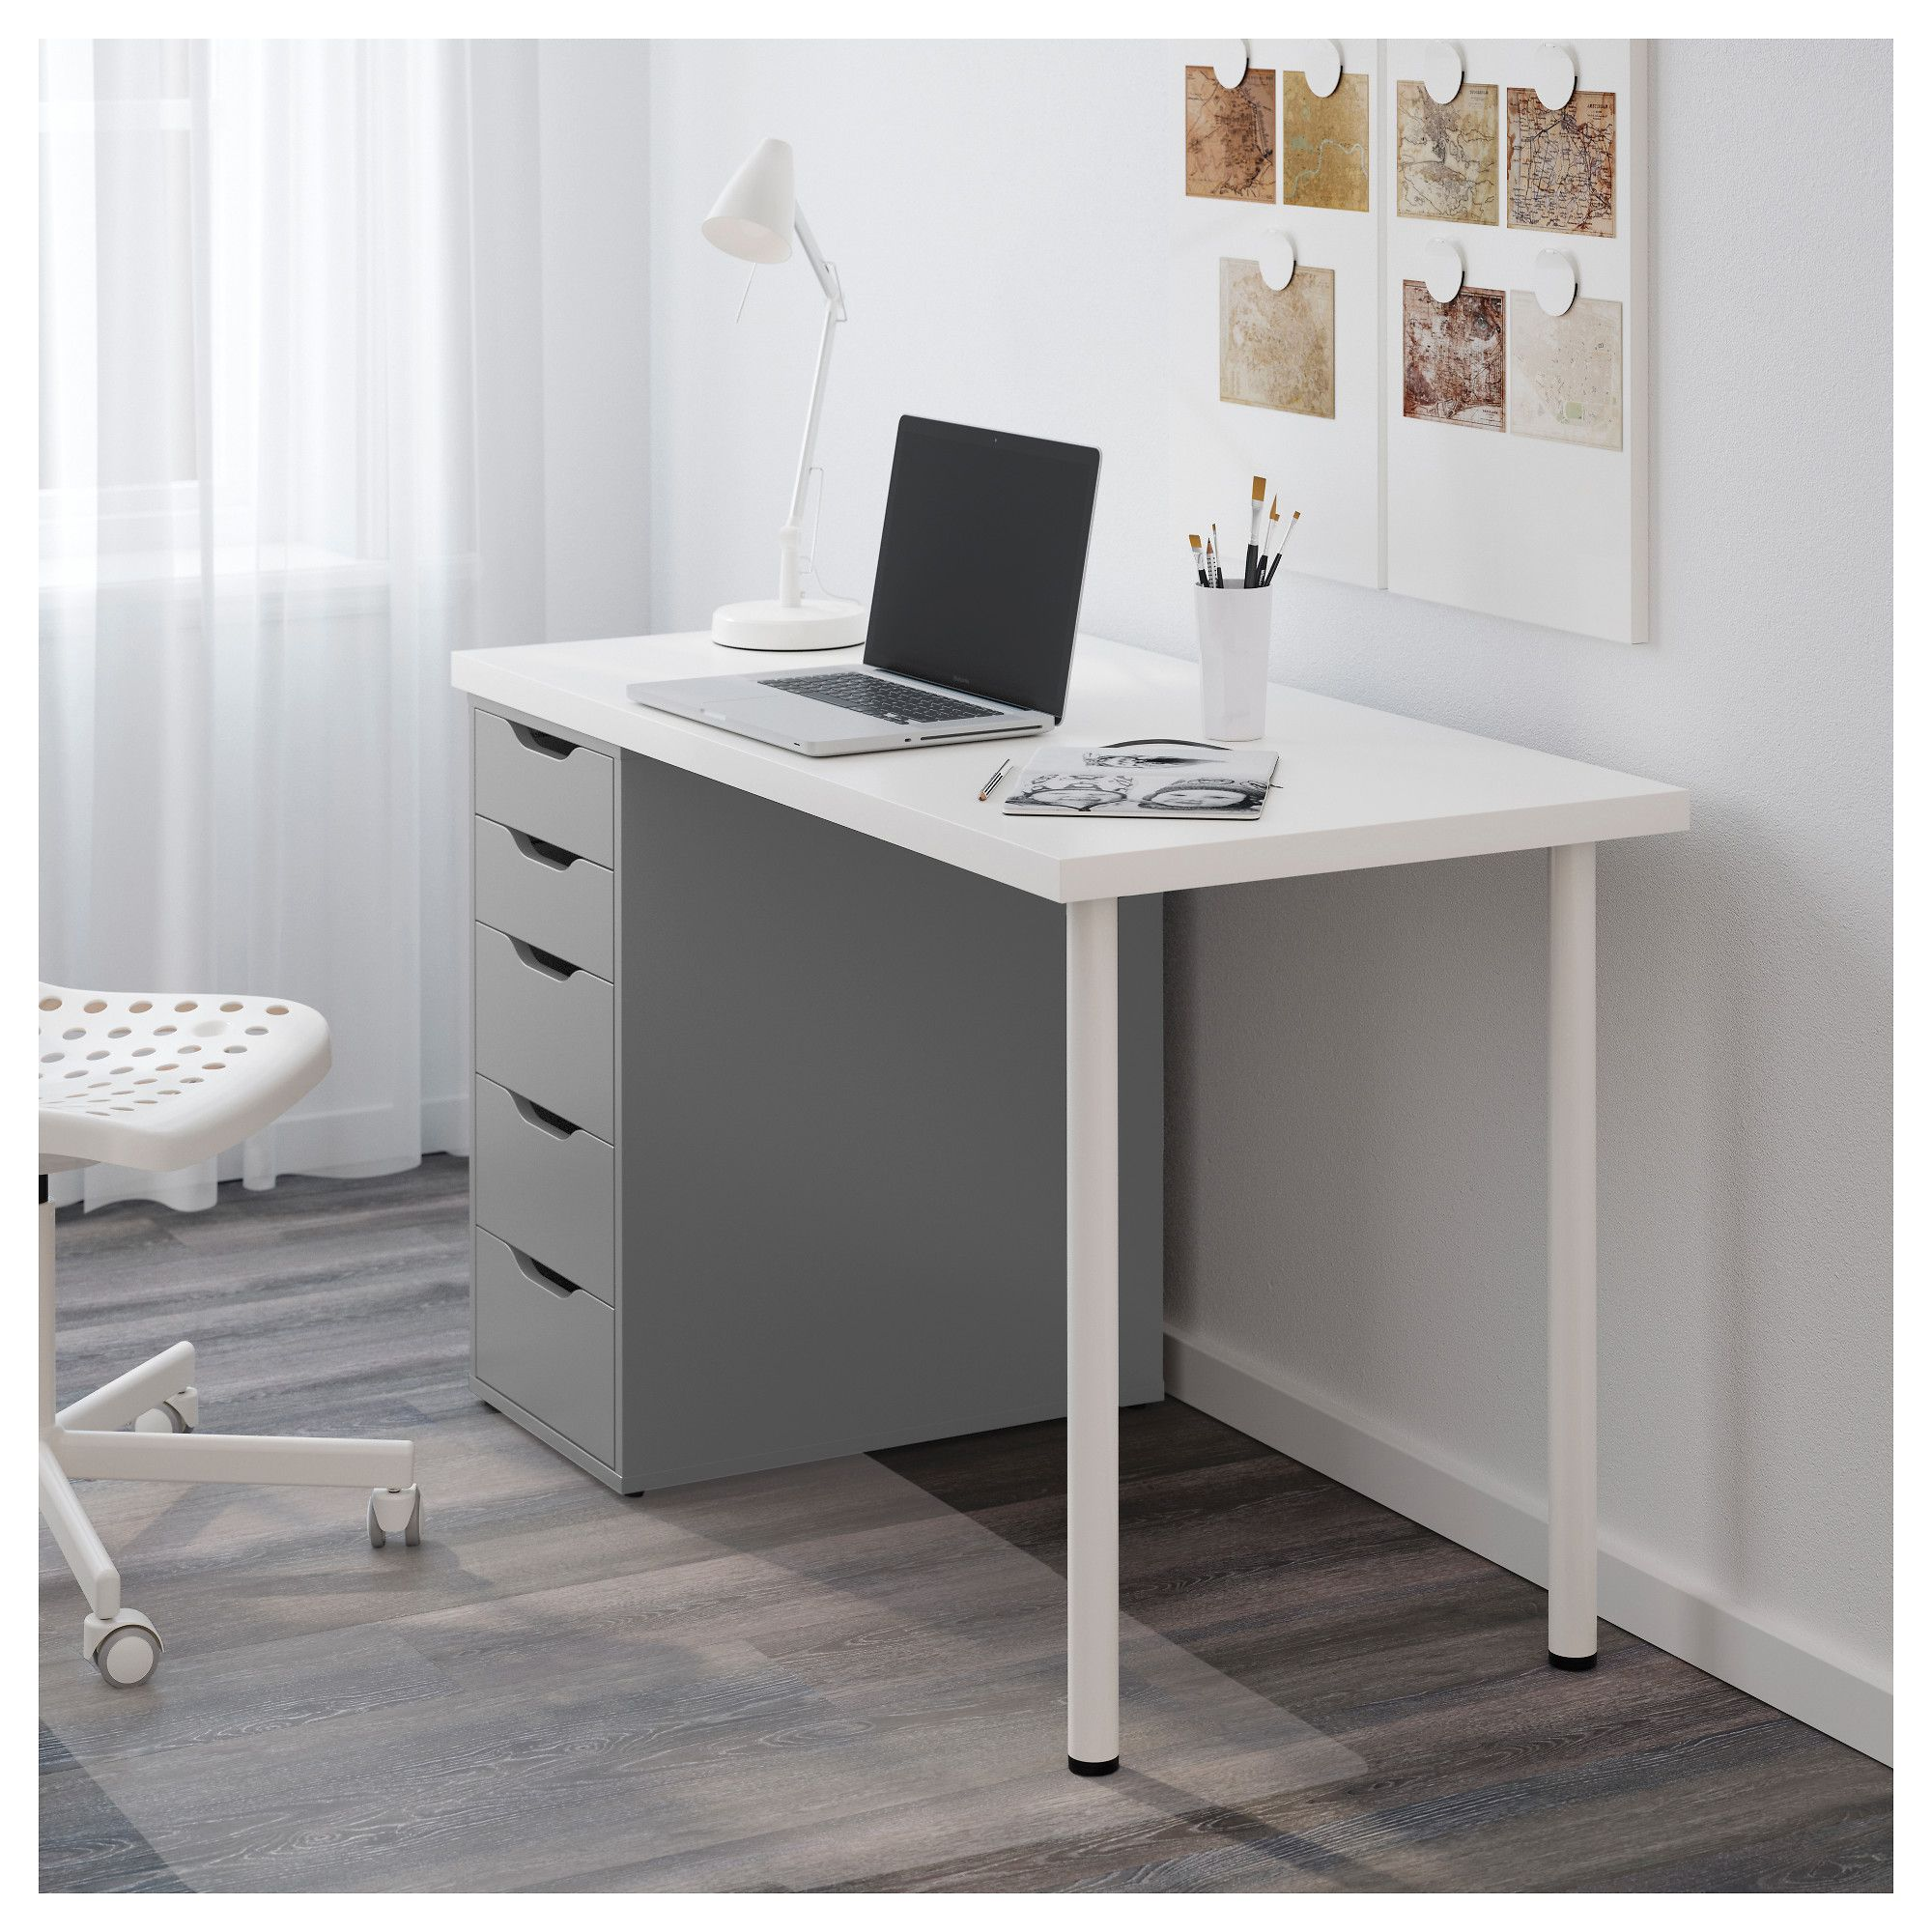 Furniture and Home Furnishings White desks, Home, Small